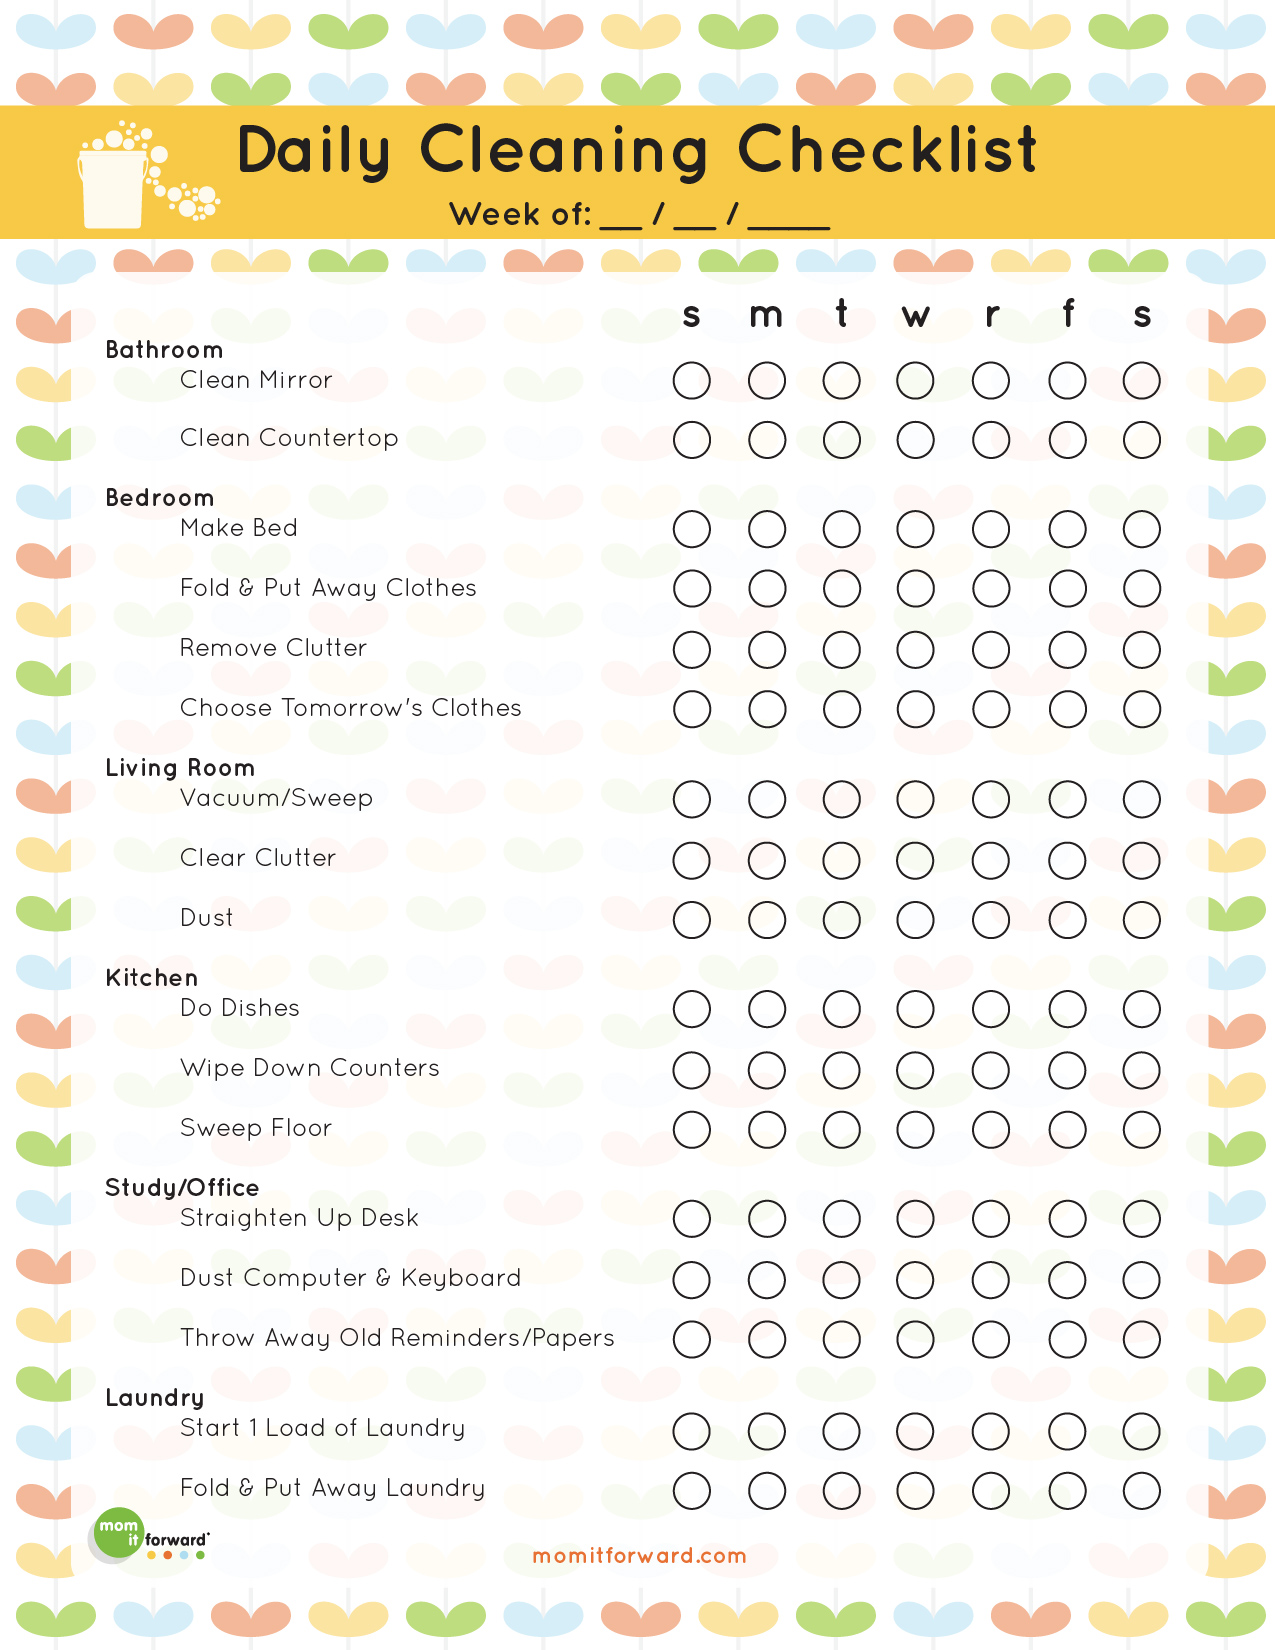 Daily House Cleaning Checklist Printable